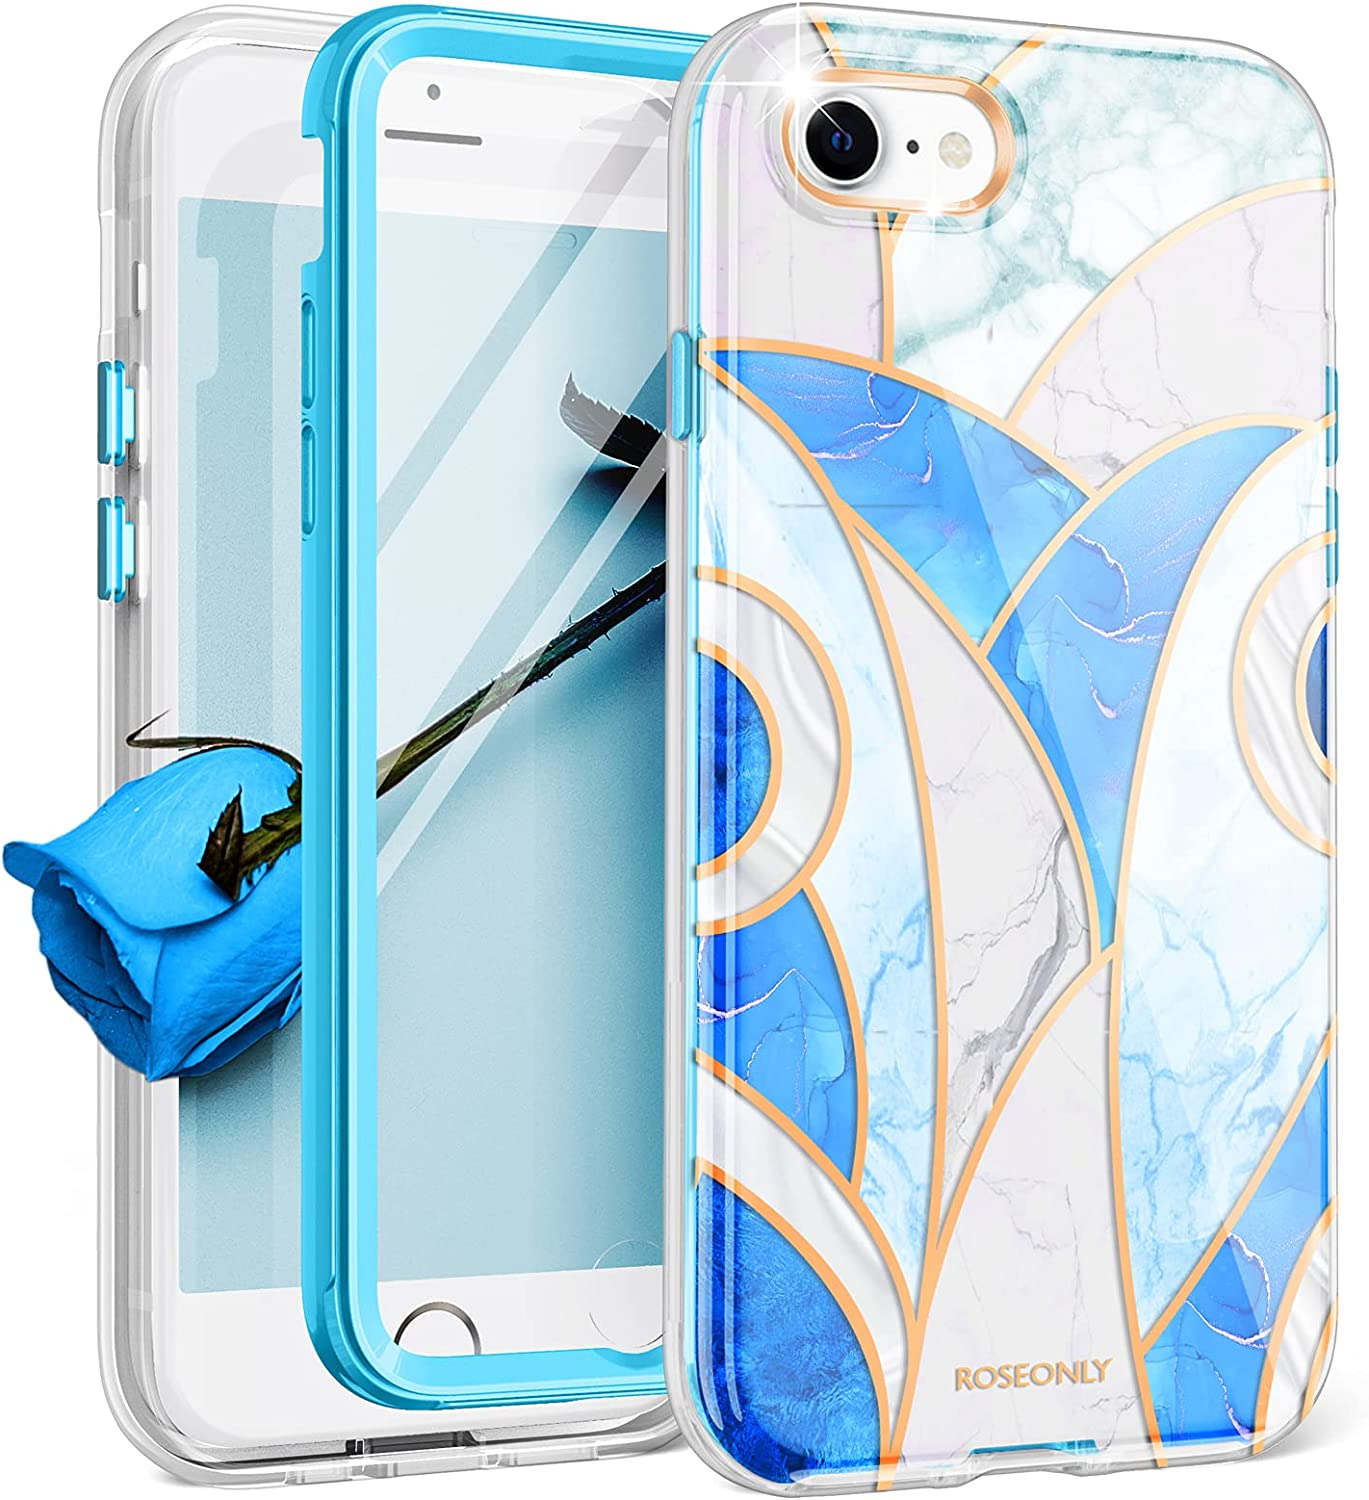 ROSEONLY [2021 Release] iPhone SE 2020 Case/iPhone 7 Case/iPhone 8 Case 4.7 Inch, Slim Stylish Protective Marble Cover with Built-in Tempered Glass Screen Protector - Blue